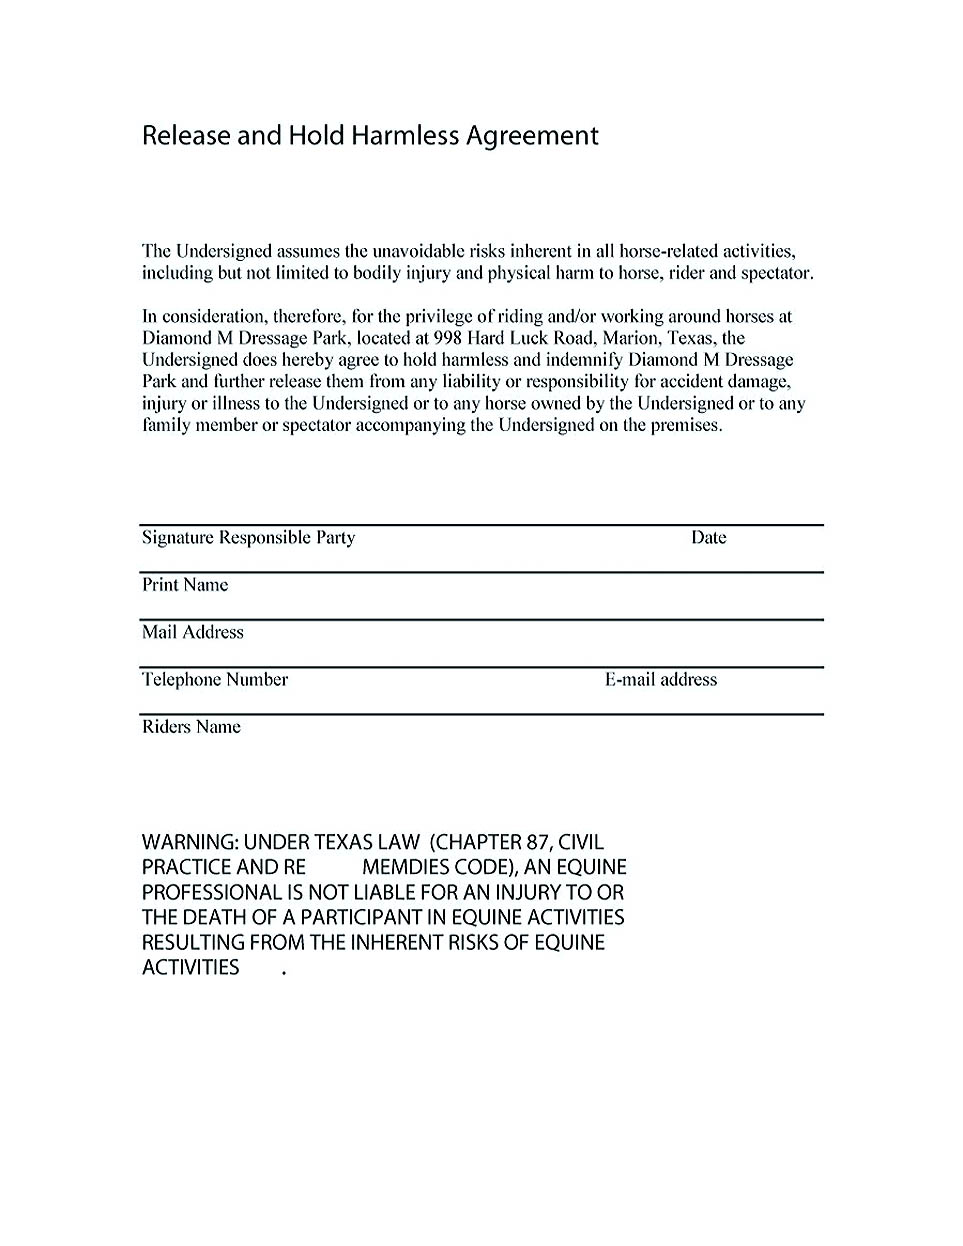 hold harmless agreement sample wording